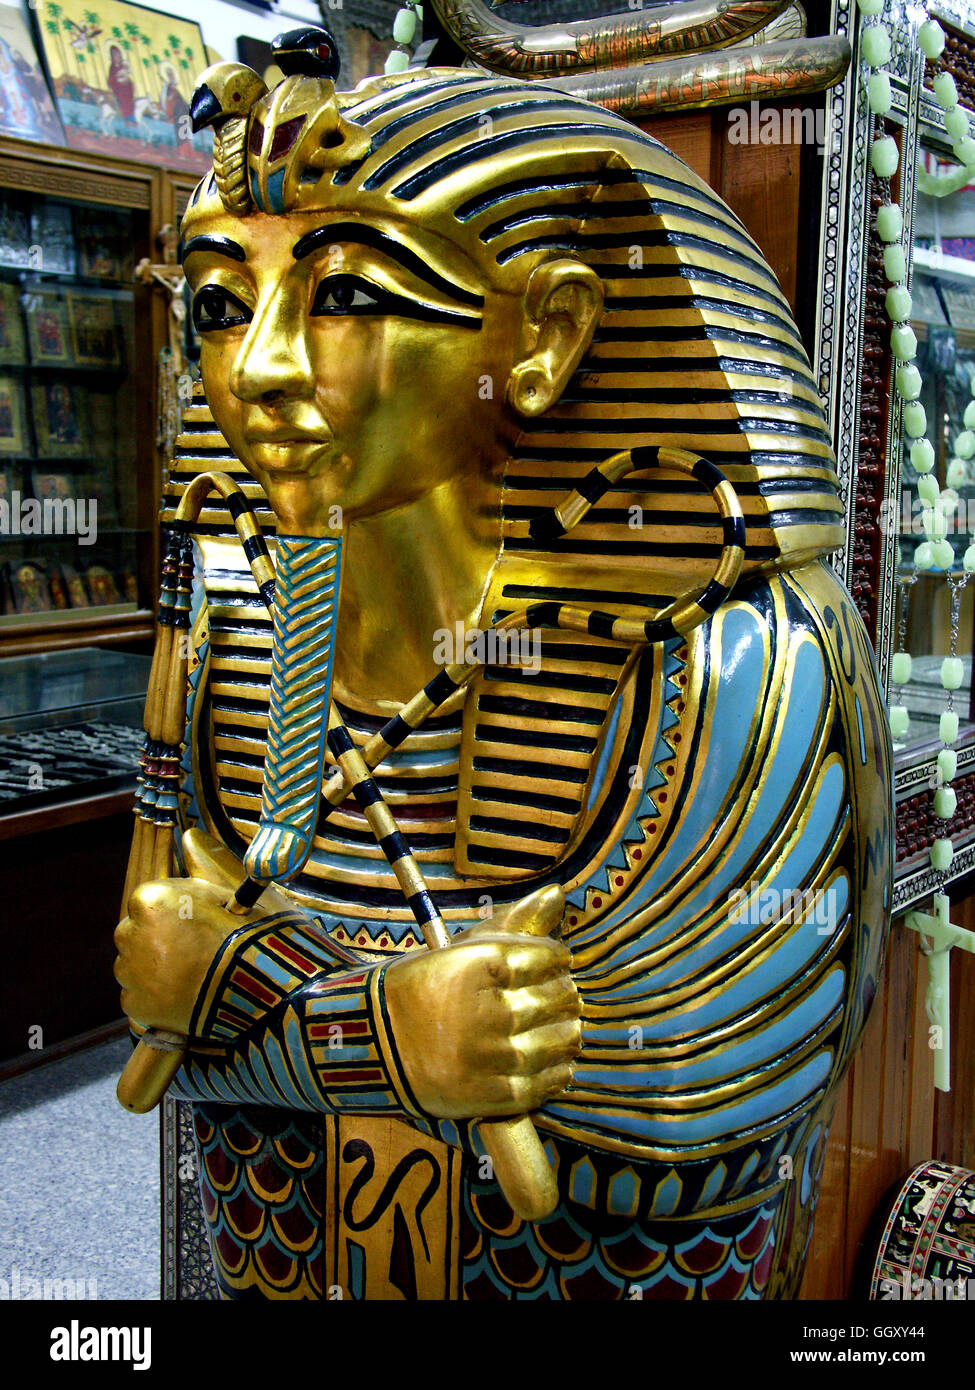 Stock Photo   Store In The Coptic Neighborhood Of Cairo Selling Furniture  Modeled After Ancient Egyptian Artifacts. Mummy Case Of Tutankhamon